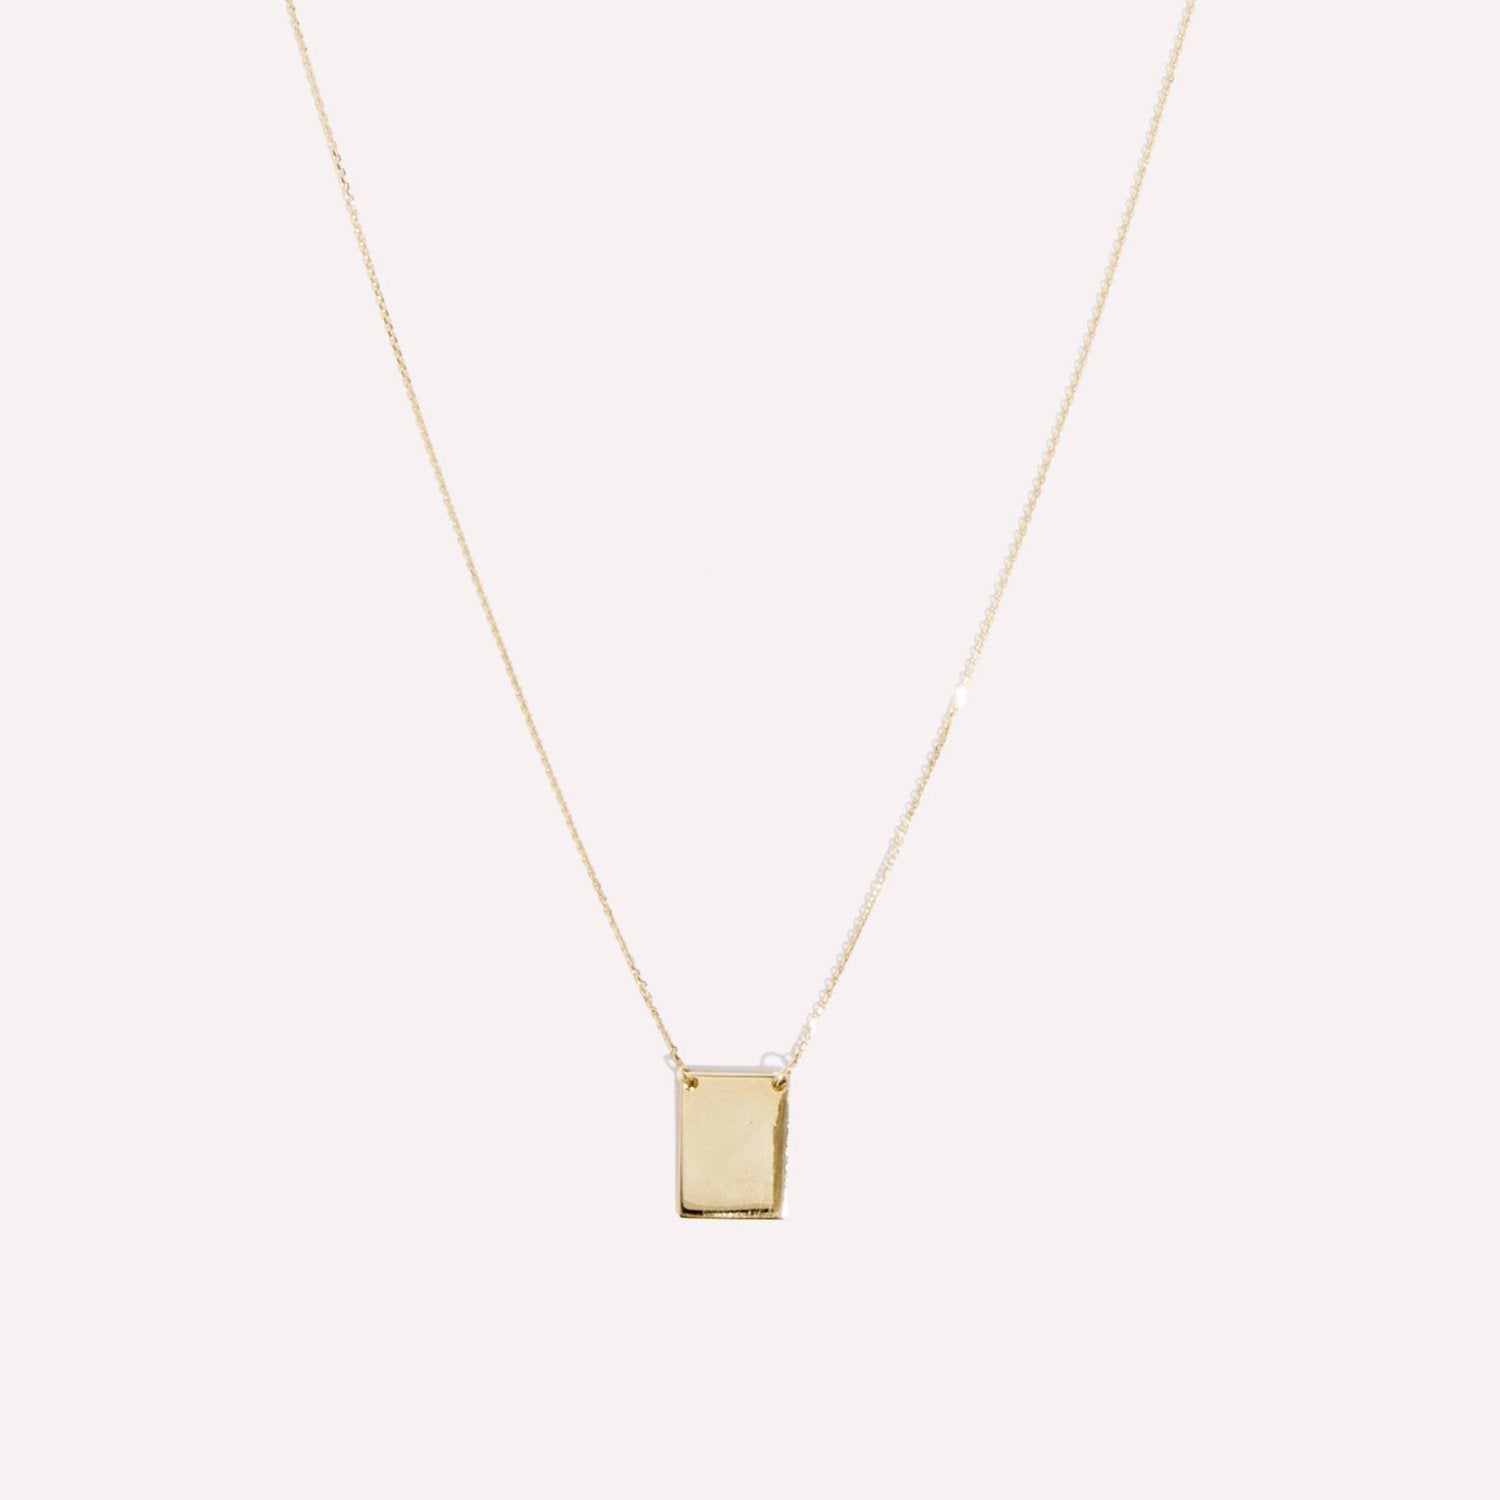 anma pendant necklace cross tiny product jewellery diamond square yellow gold